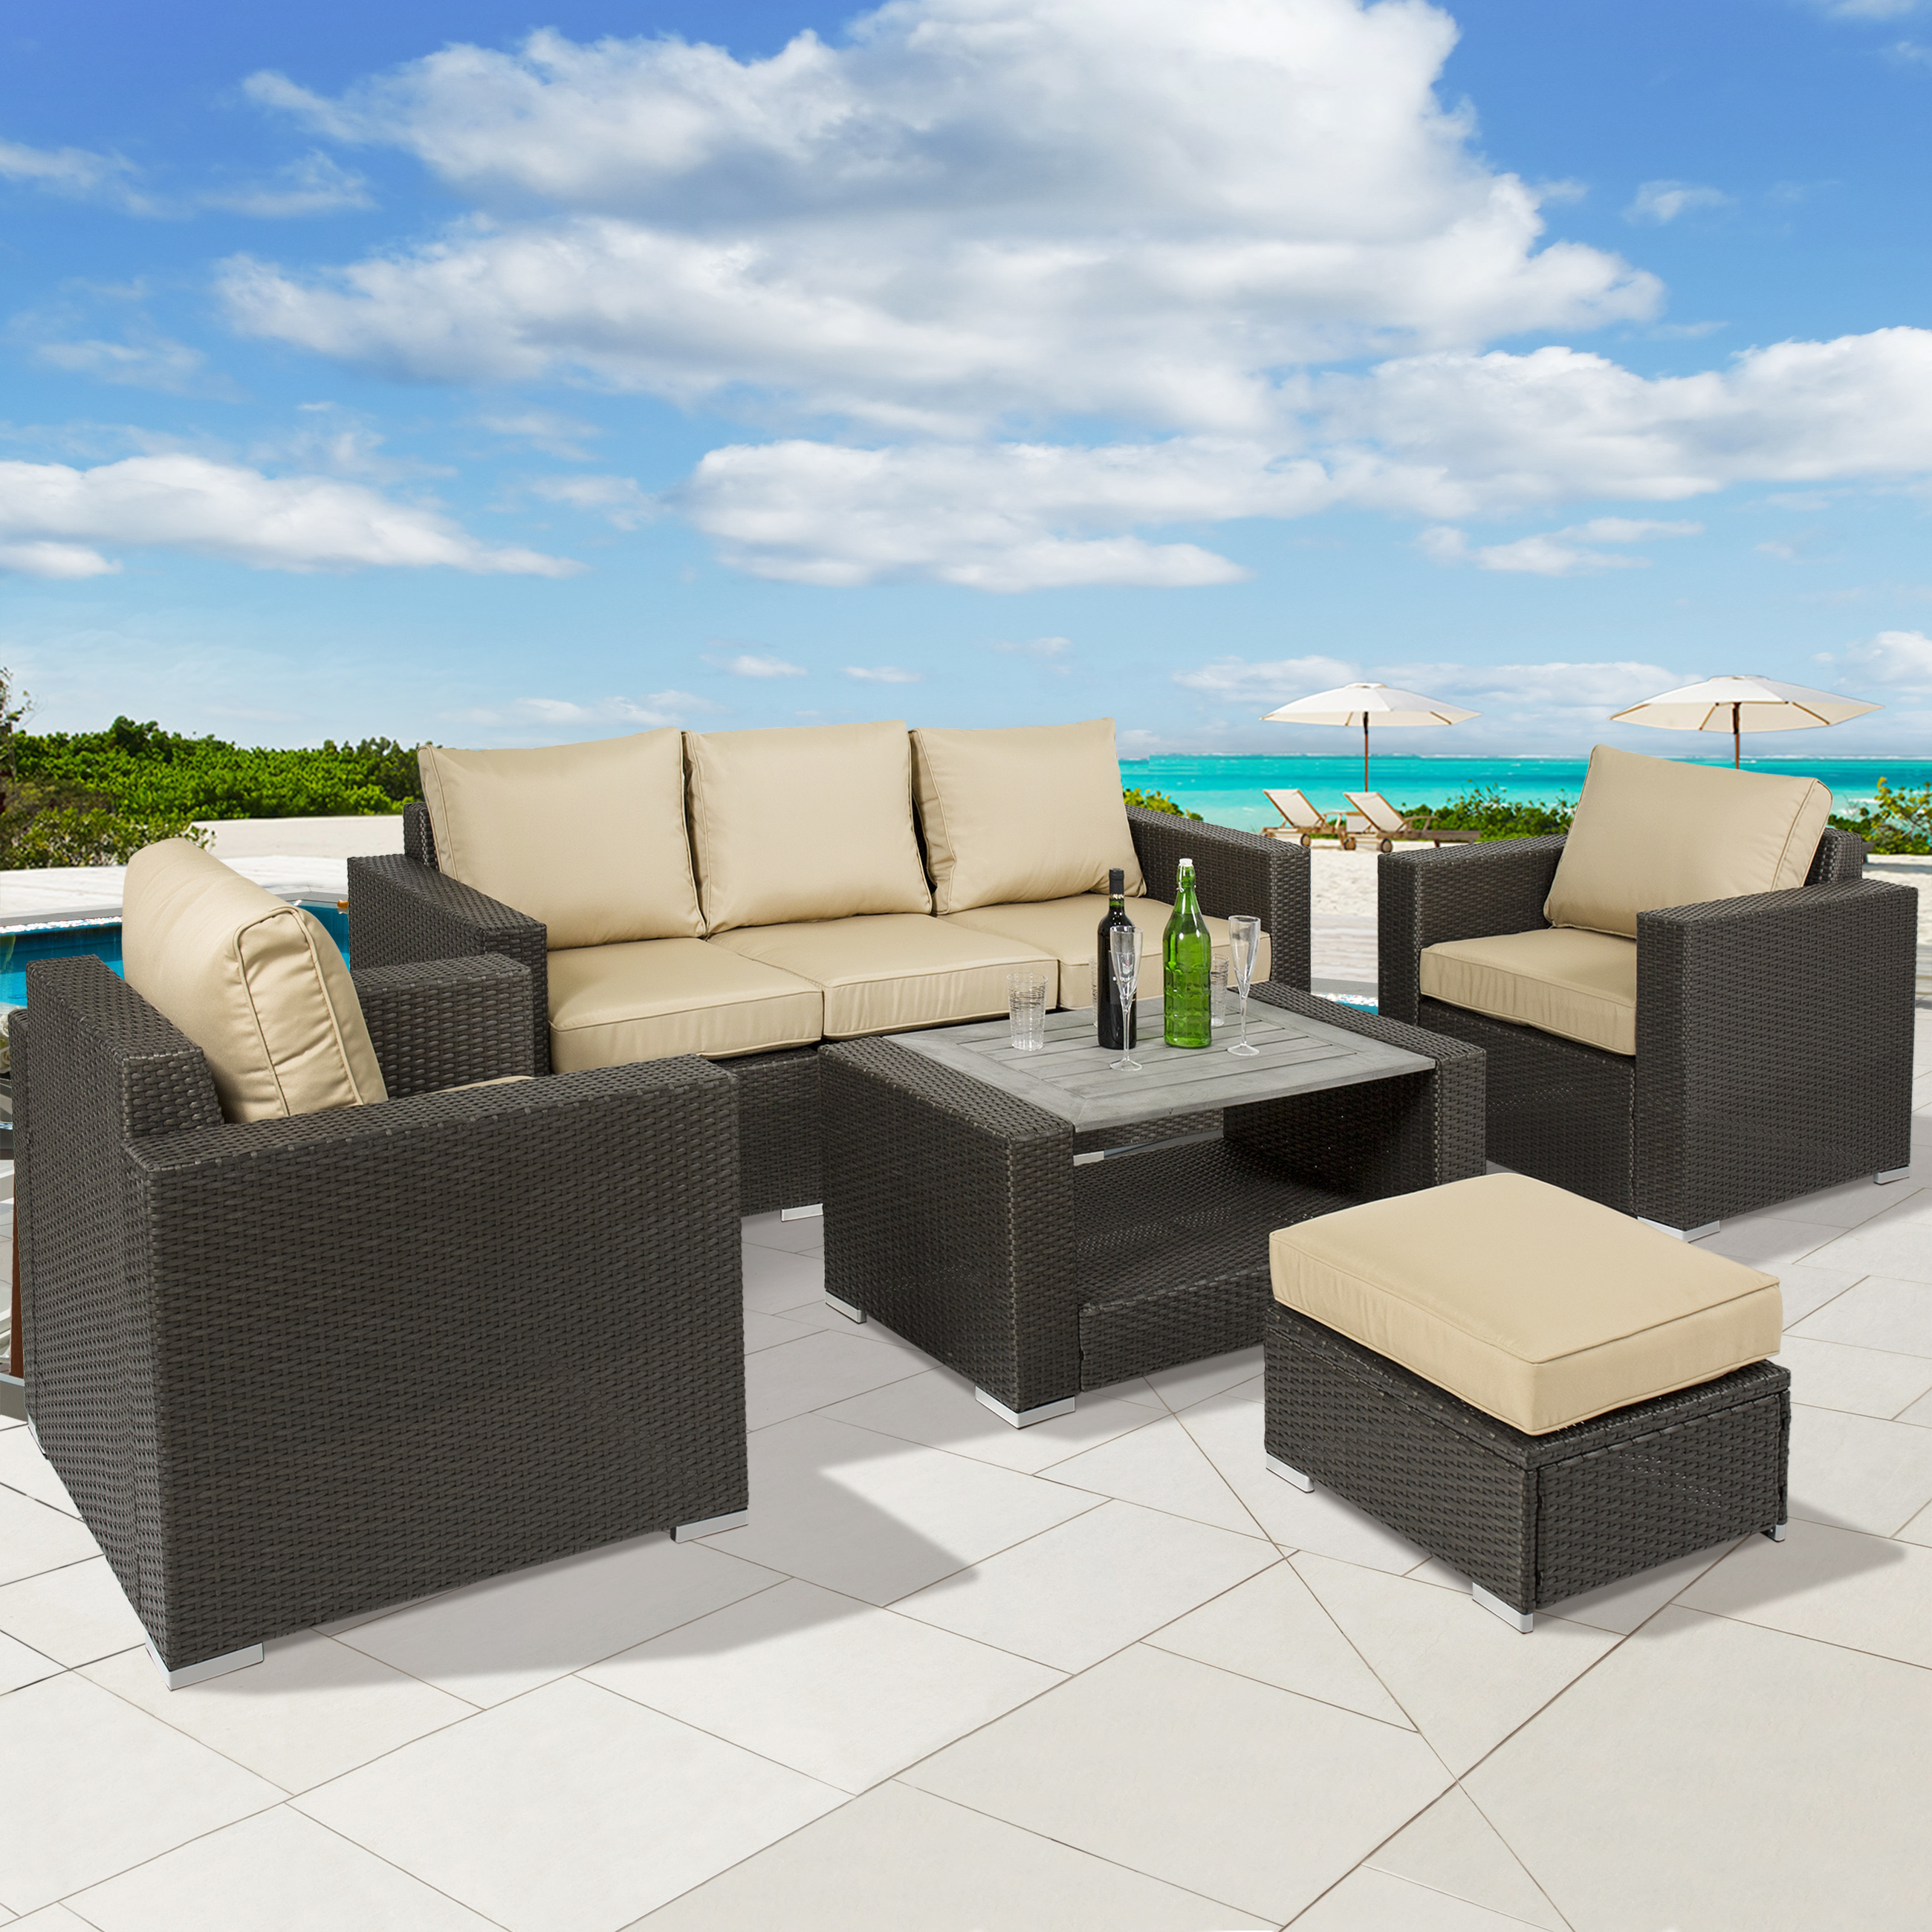 Best Choice Products 7-Piece Outdoor Patio Wicker Sectional Furniture Sofa Set w  Table, Cushions, Ottoman... by Best Choice Products